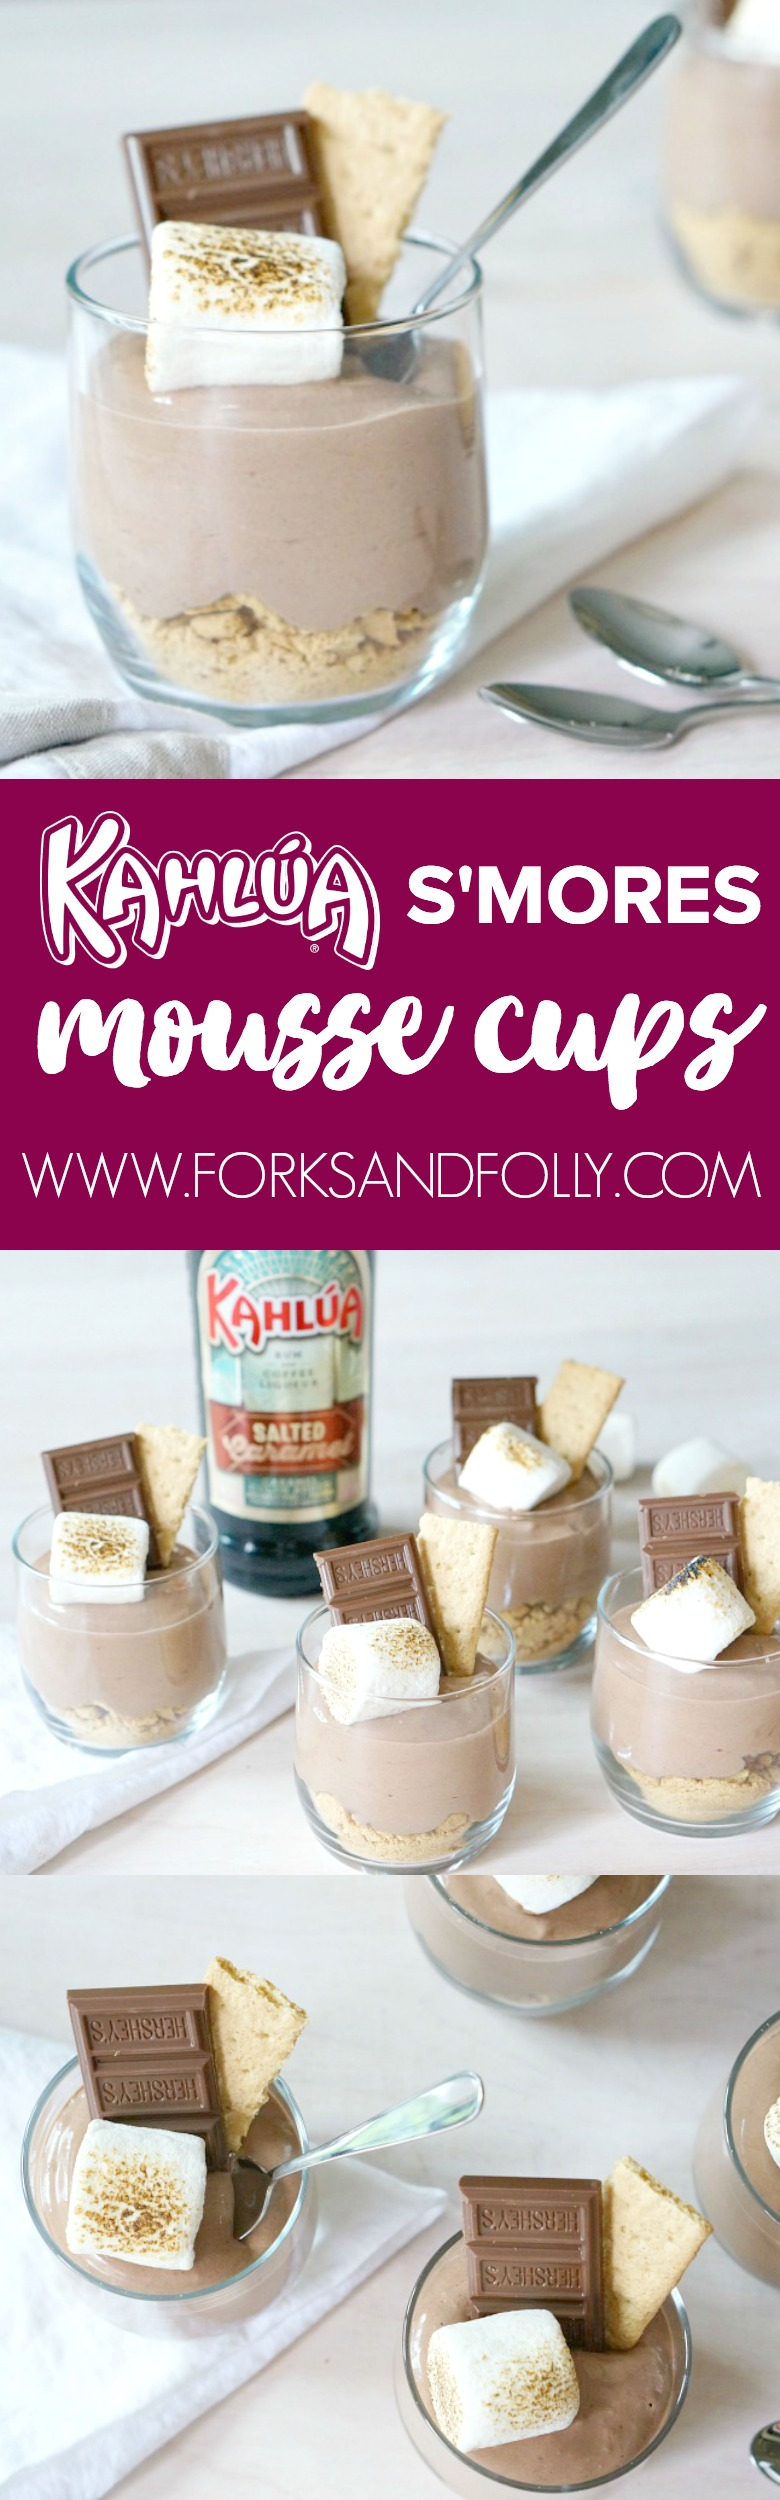 Kahlua S'mores Mousse Cups: #52WeeksofSweets, Week 15 ...